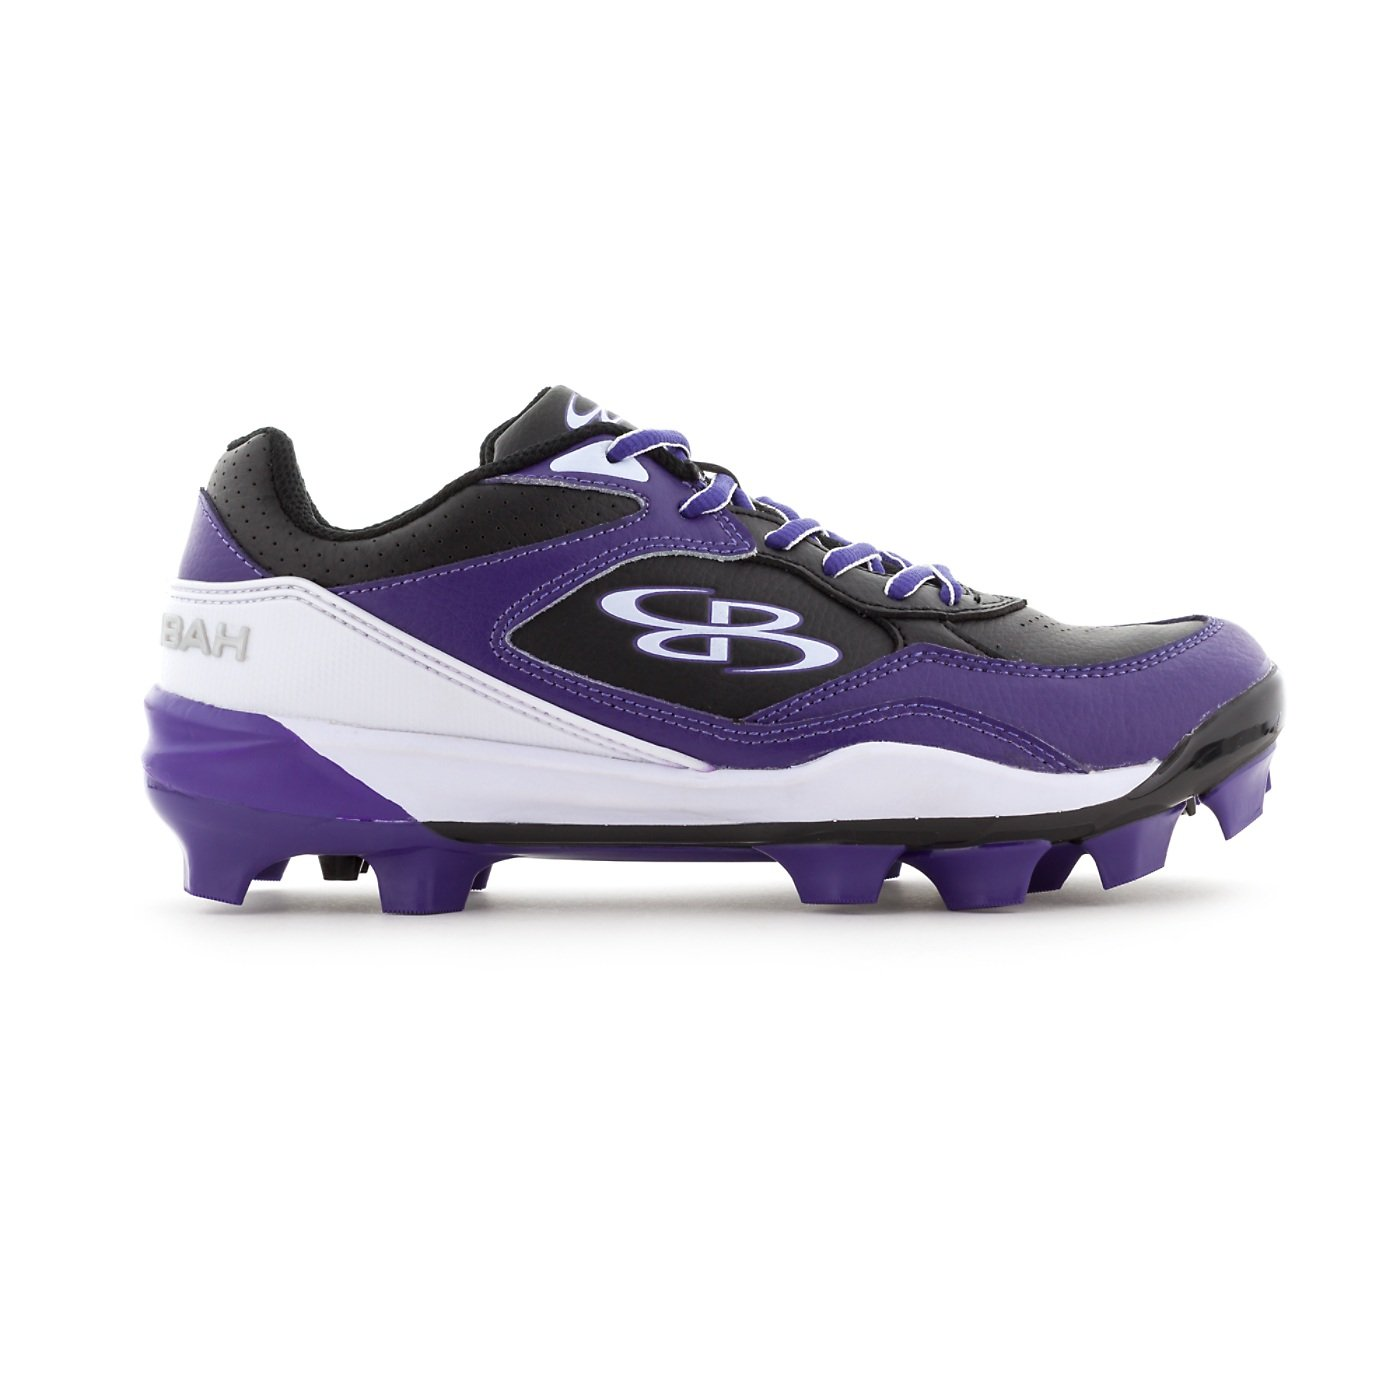 Boombah Women's Endura Molded Cleats Black/Purple - Size 8.5